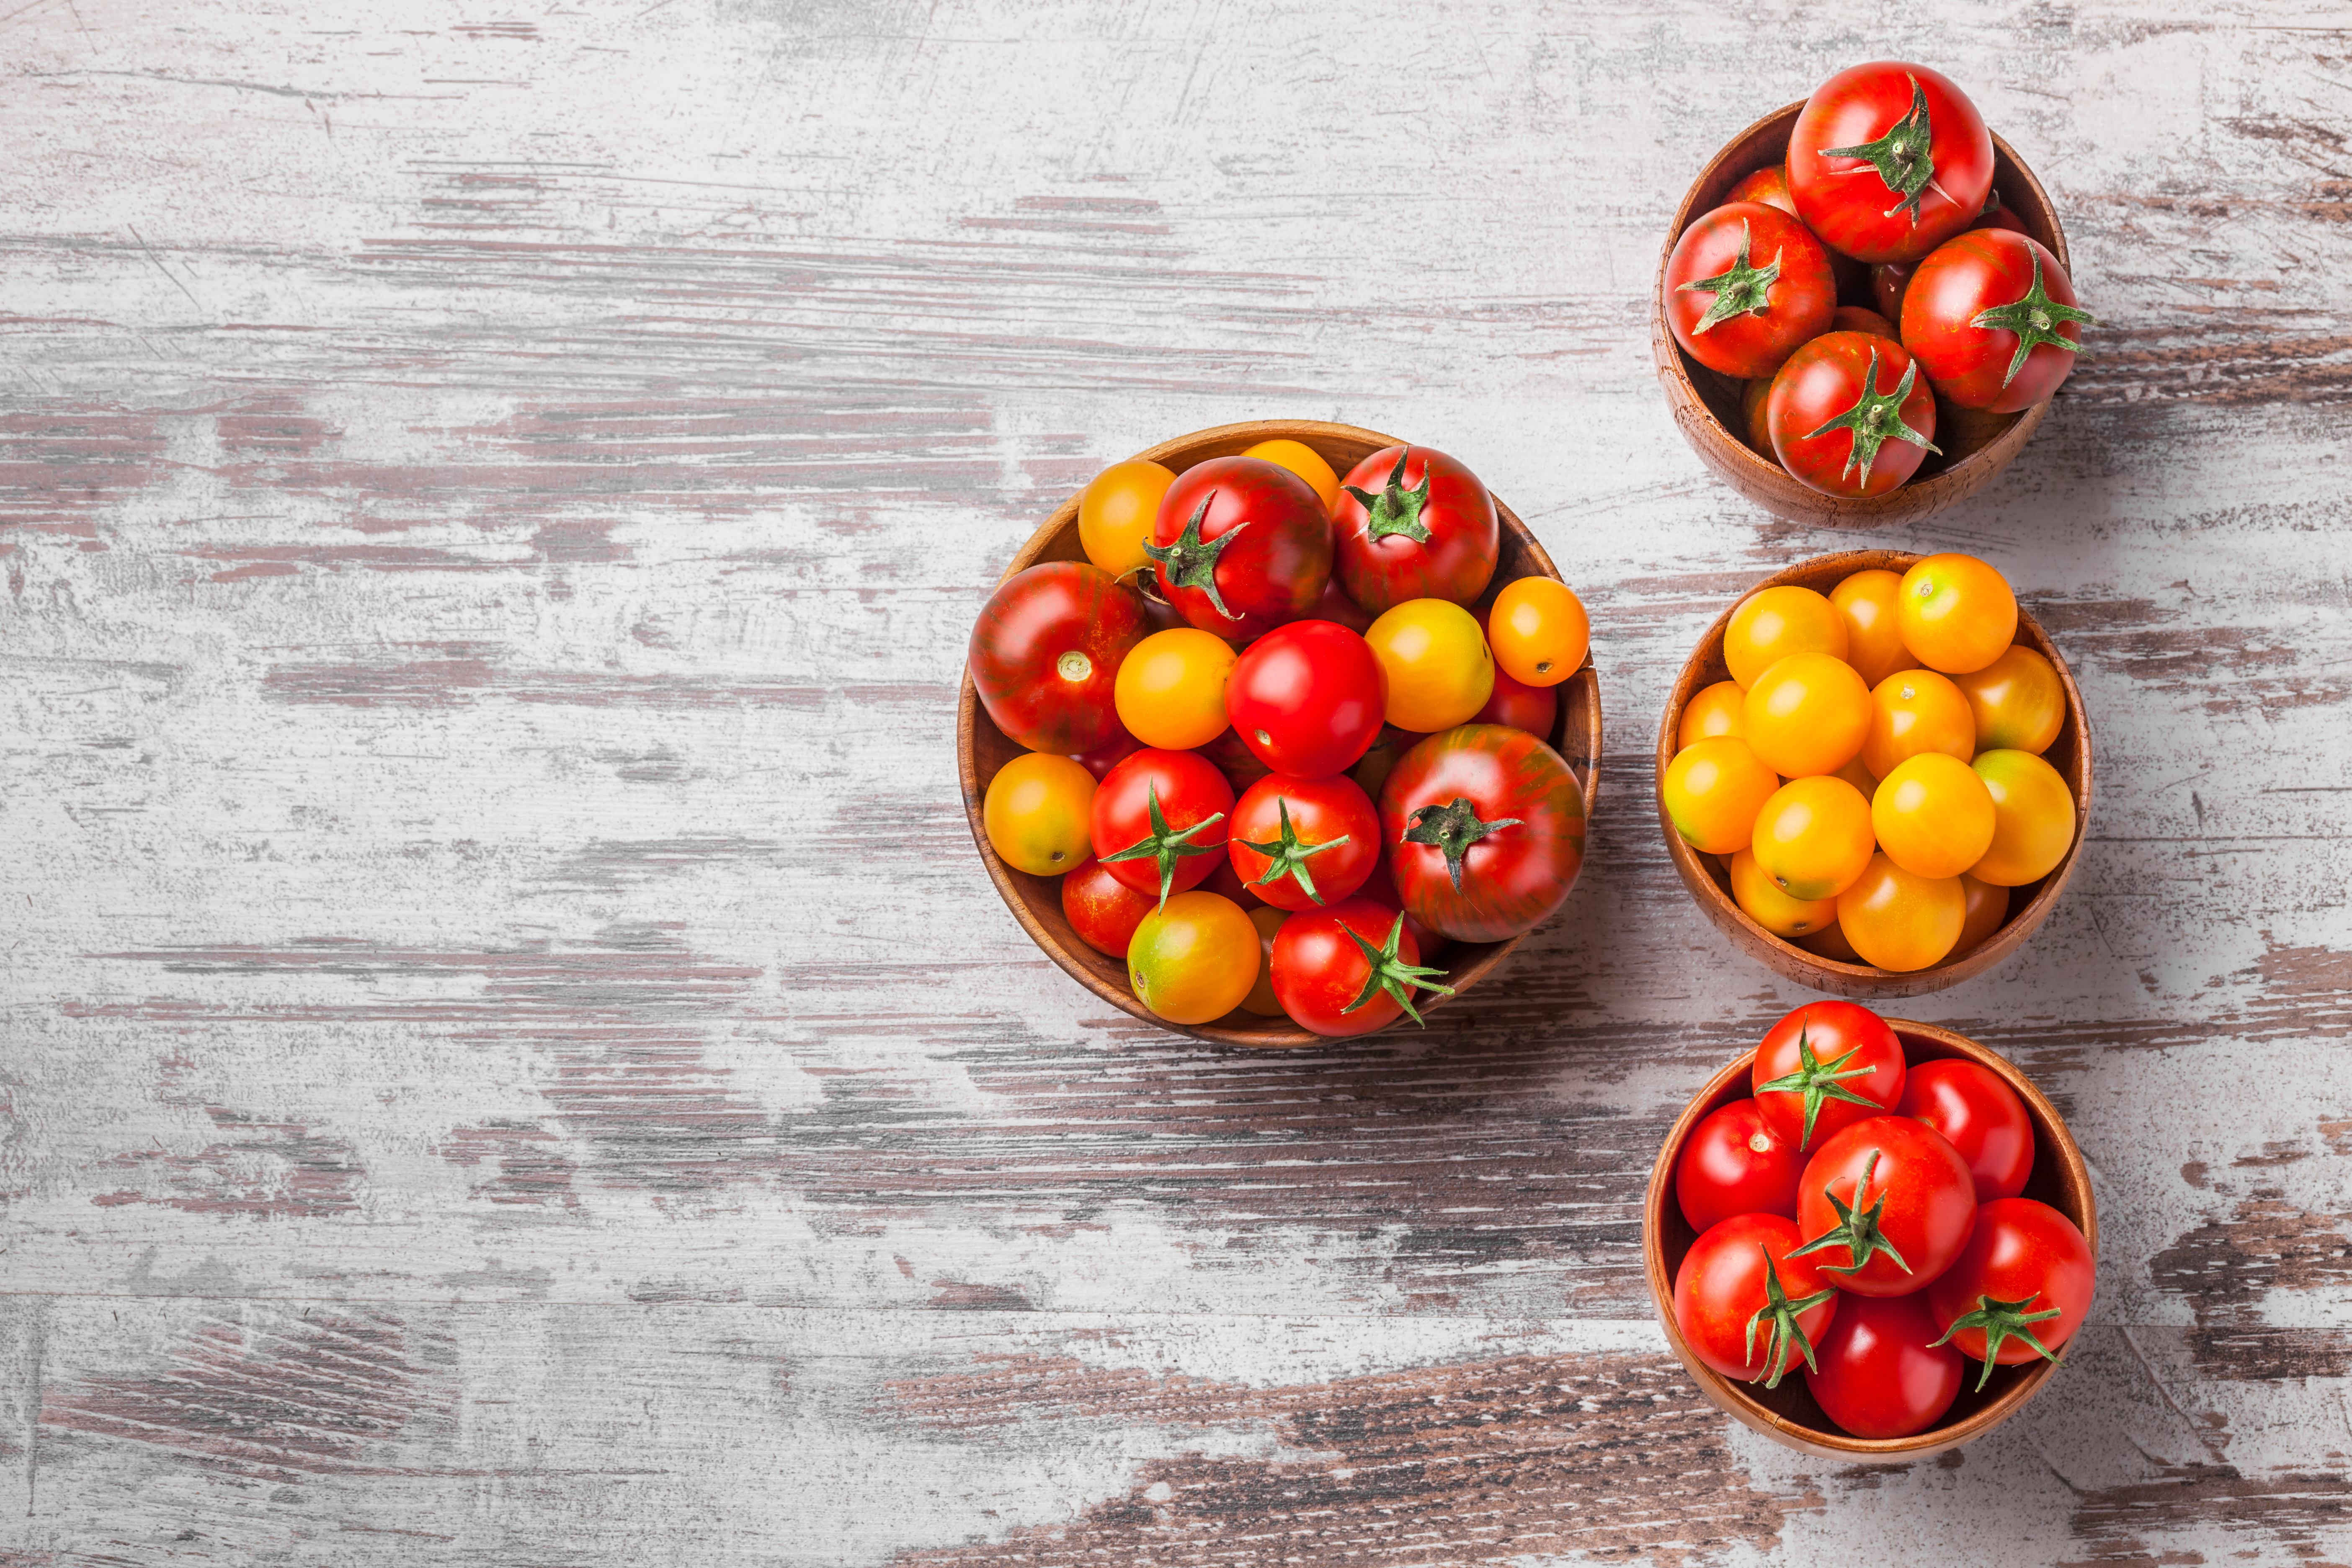 What Are the Health Benefits of Eating Cherry Tomatoes? | Healthy Eating |  SF Gate